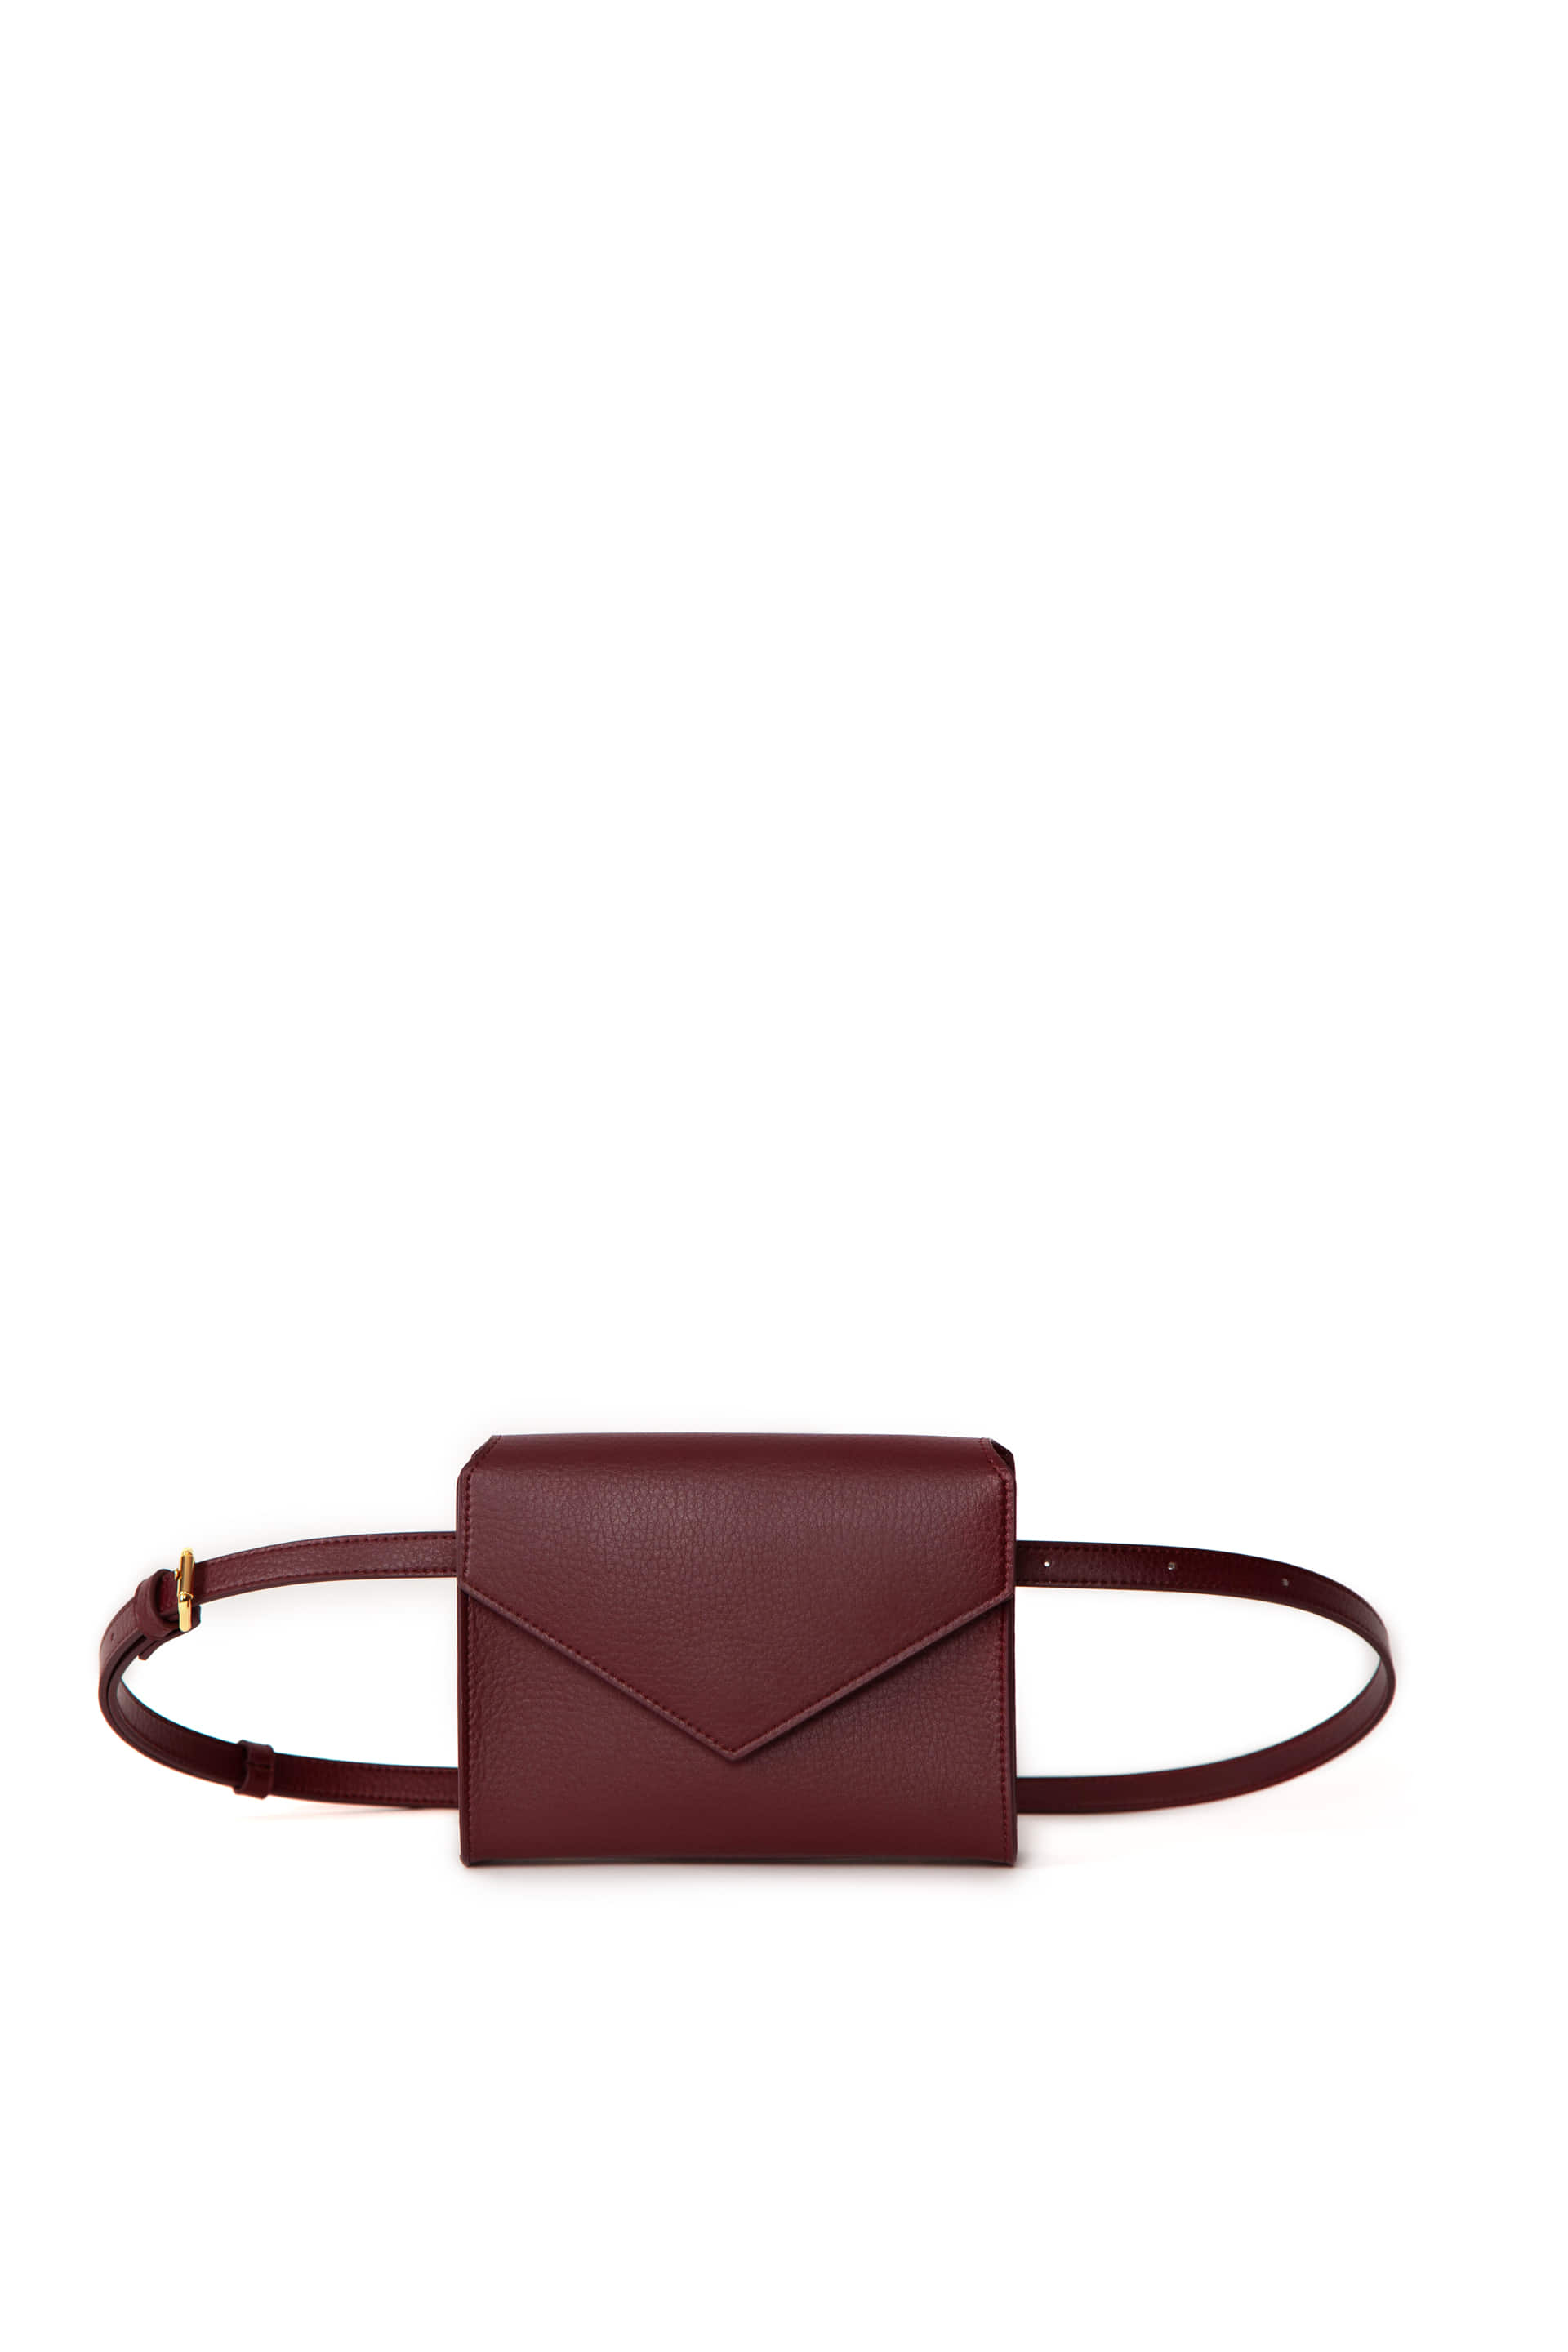 4-way BELT BAG 17 Vino Wine